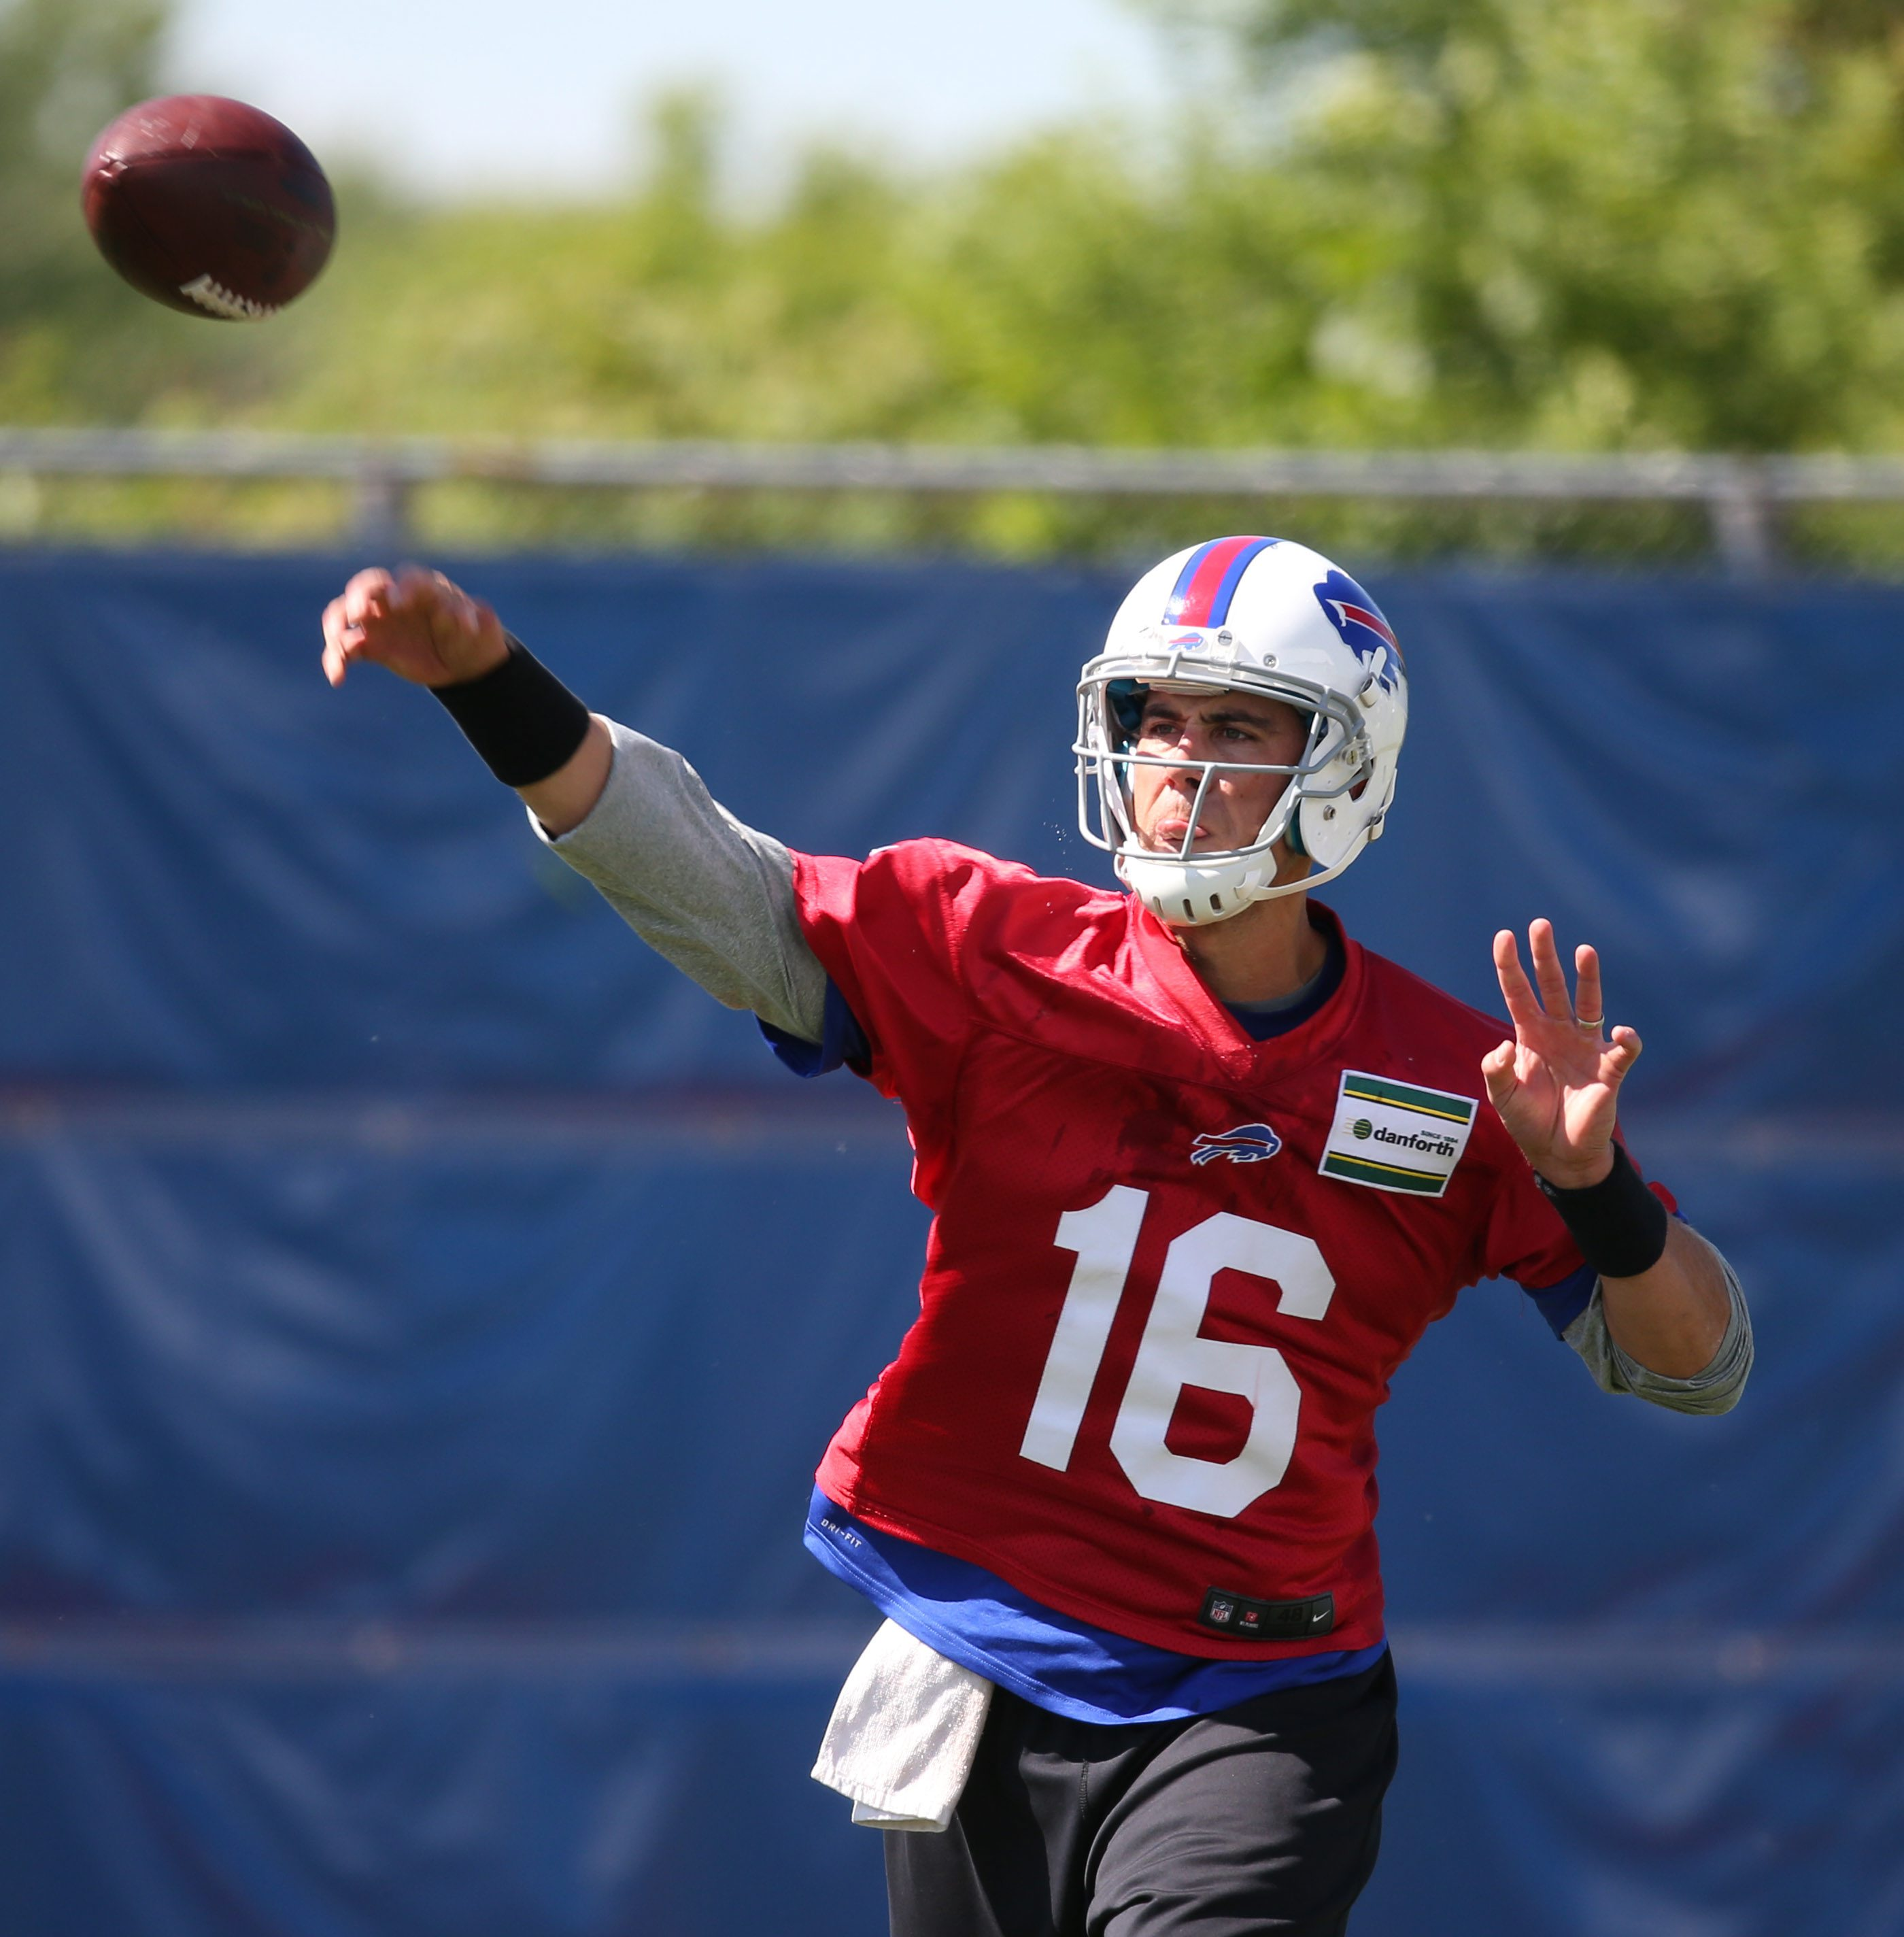 The Bills have to hope Matt Cassel plays like he did in 2008 with New England and 2010 with Kansas City if he wins the quarterback battle in training camp.